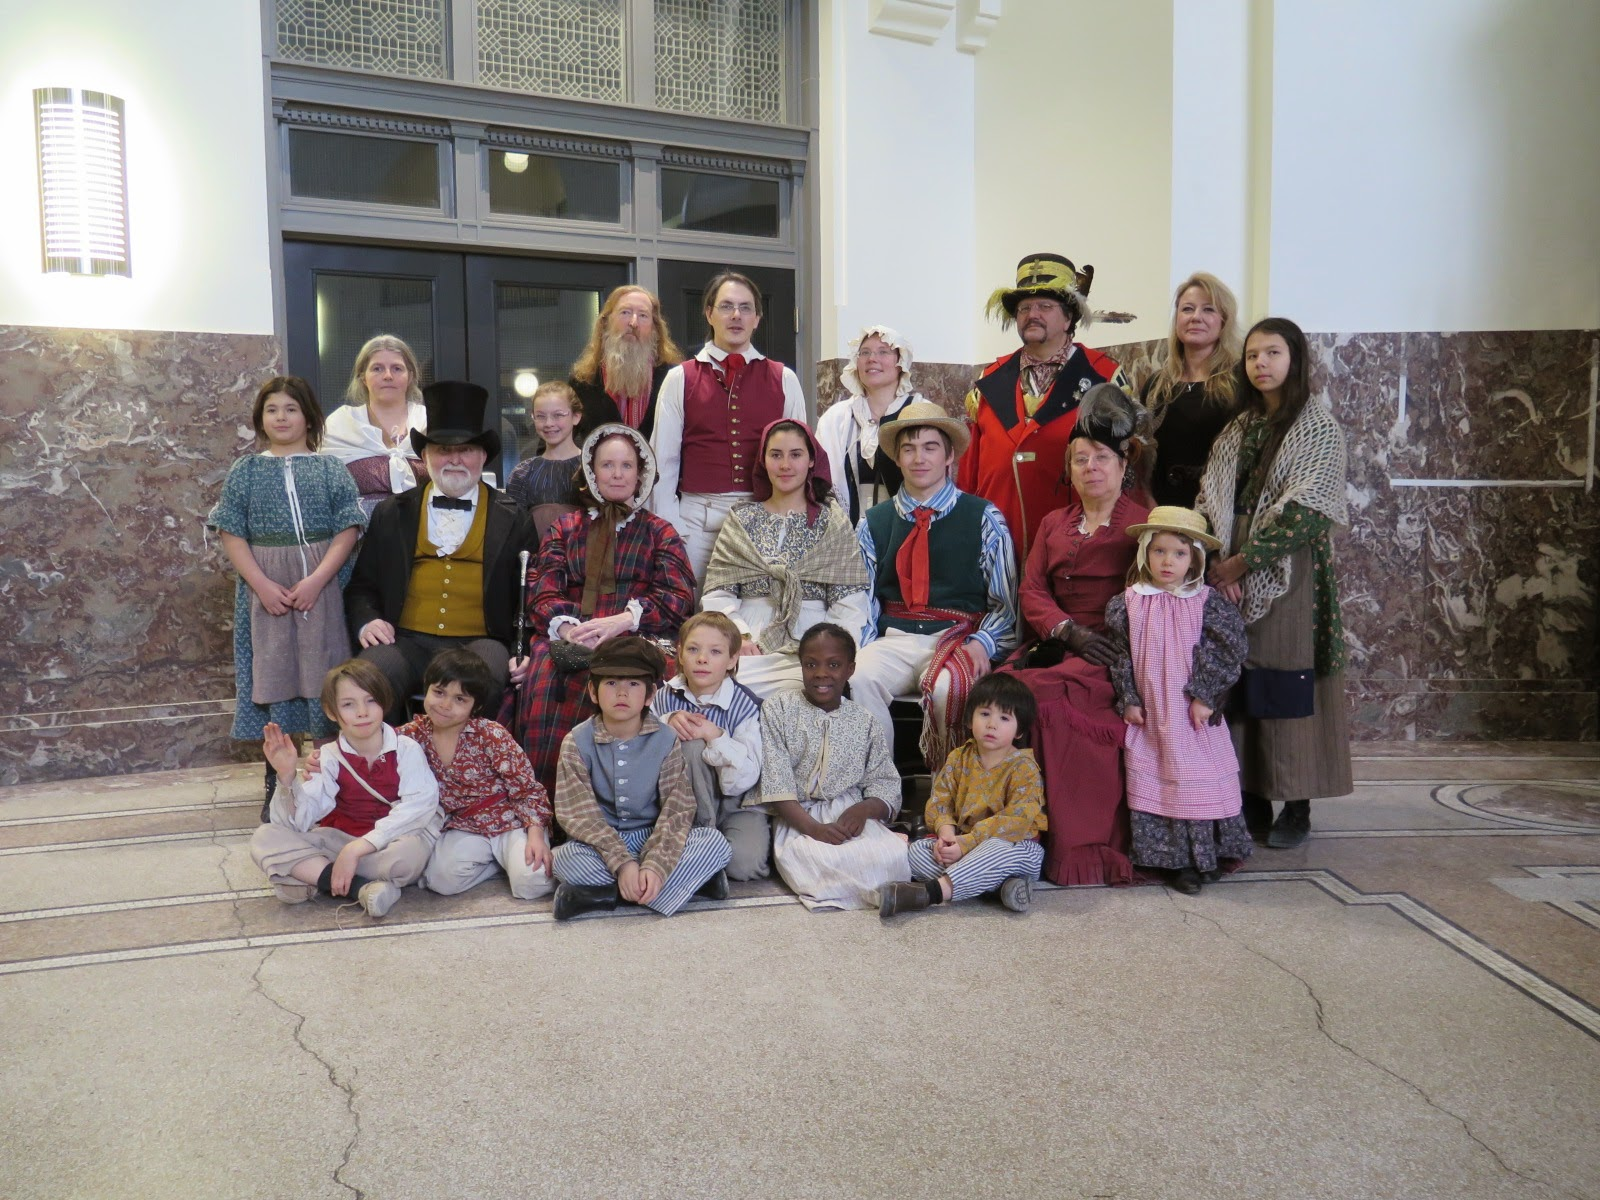 Representatives from the Manitoba Living History Society attended the event in full costume!